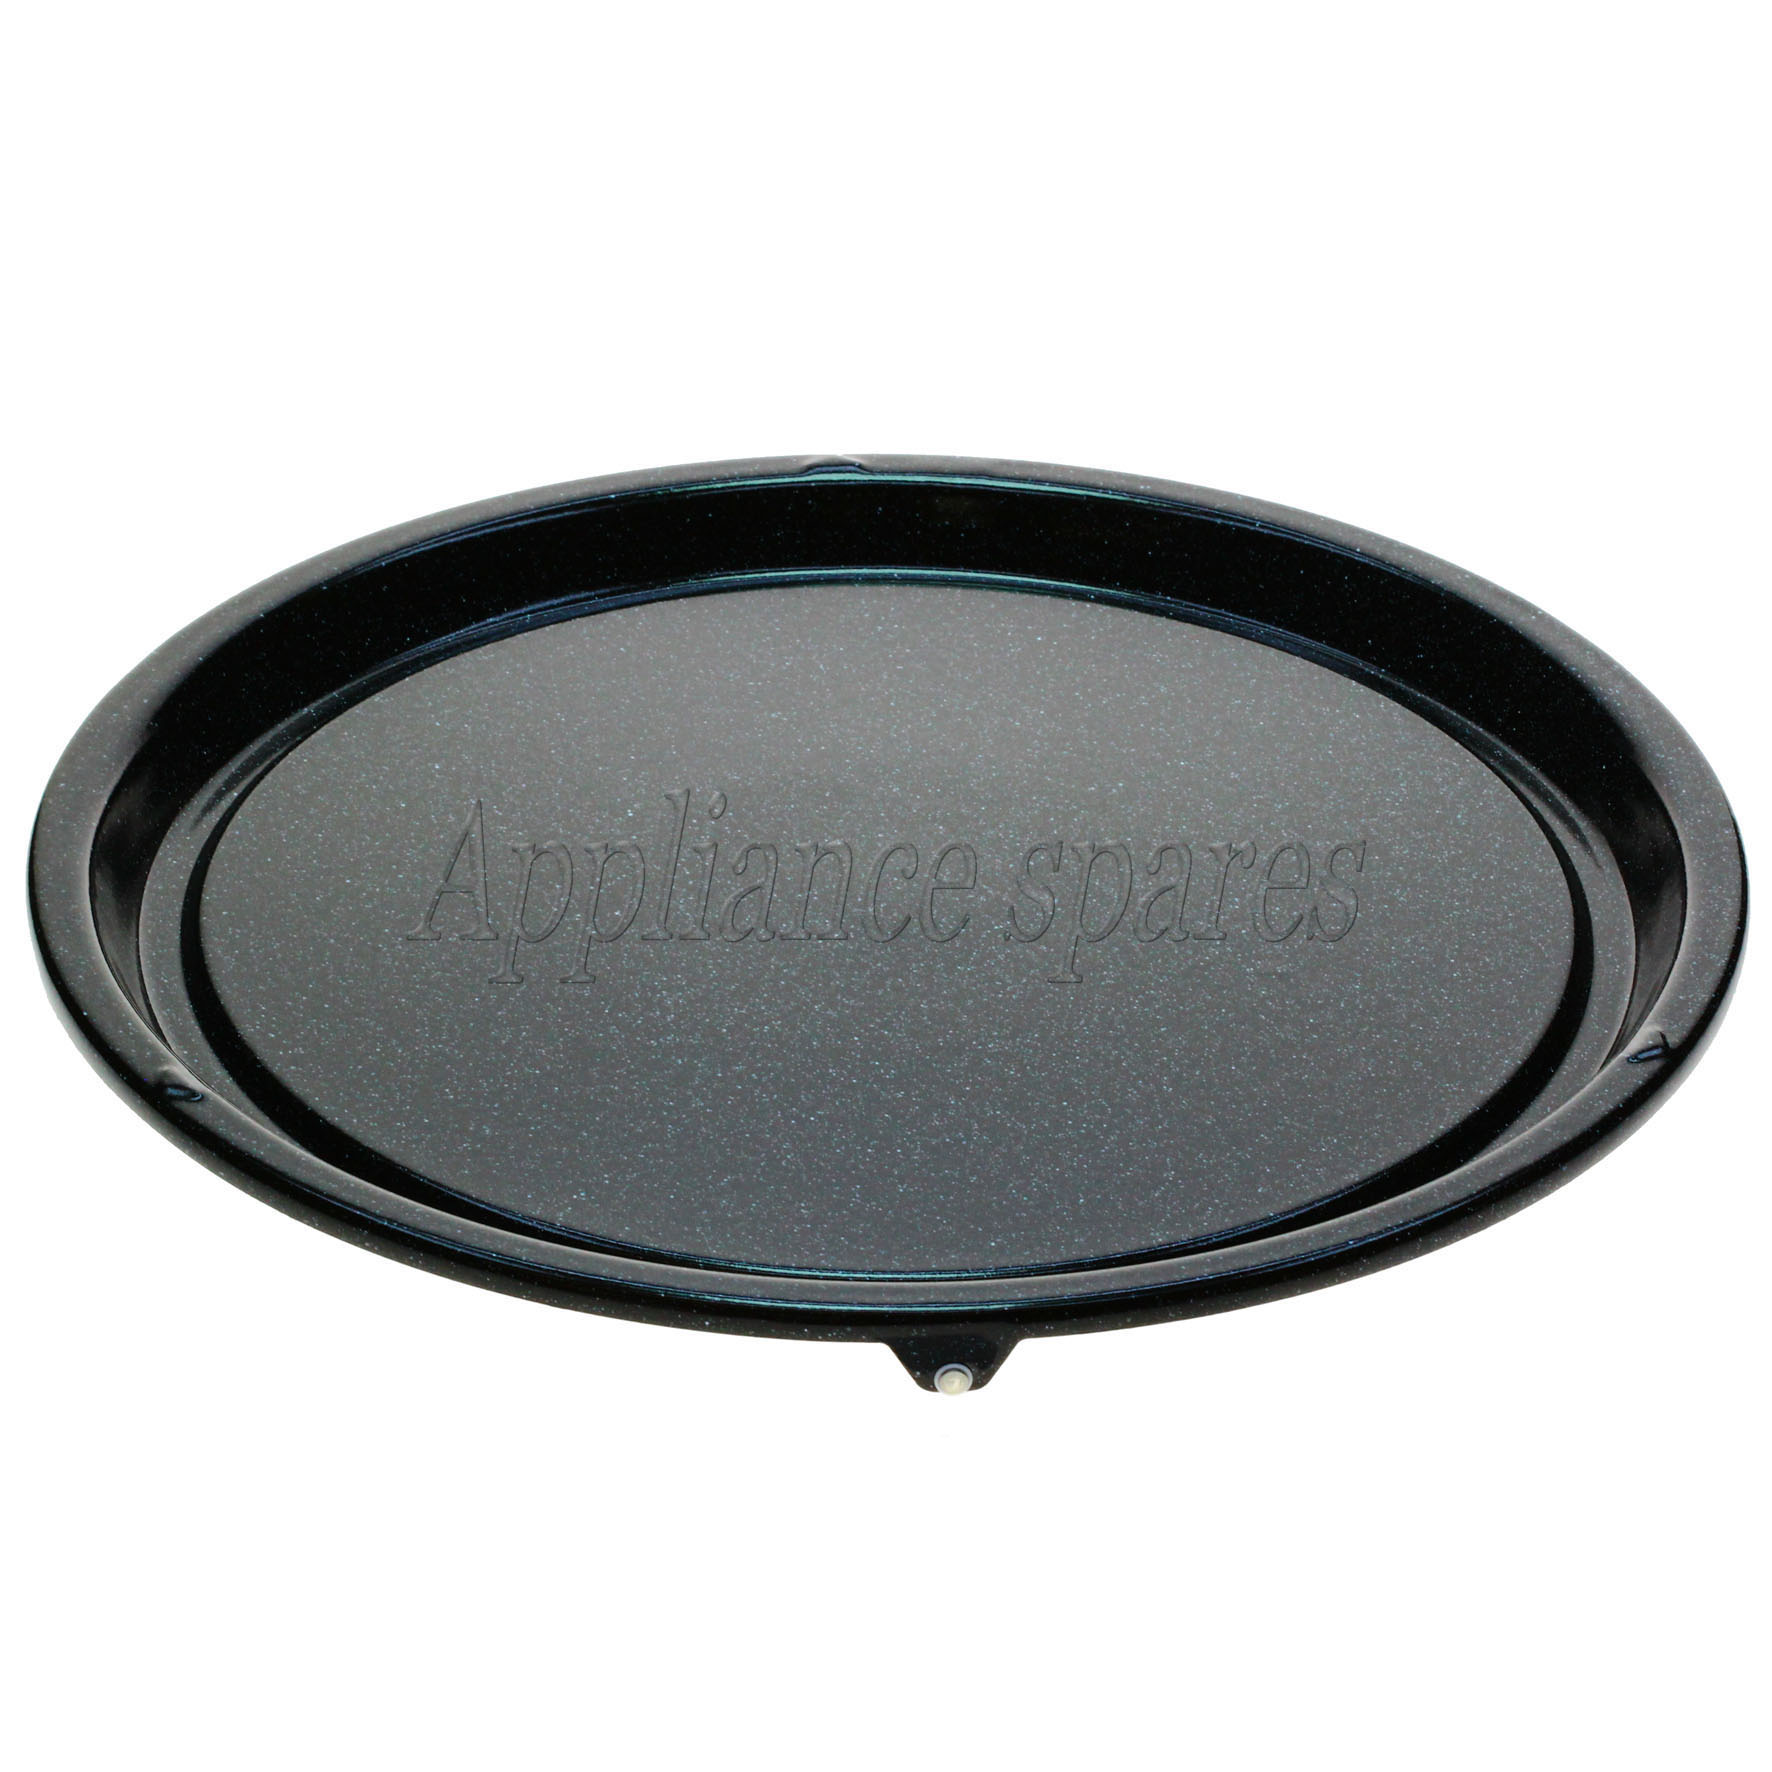 Lg Microwave Oven Metal Tray 40 5cm